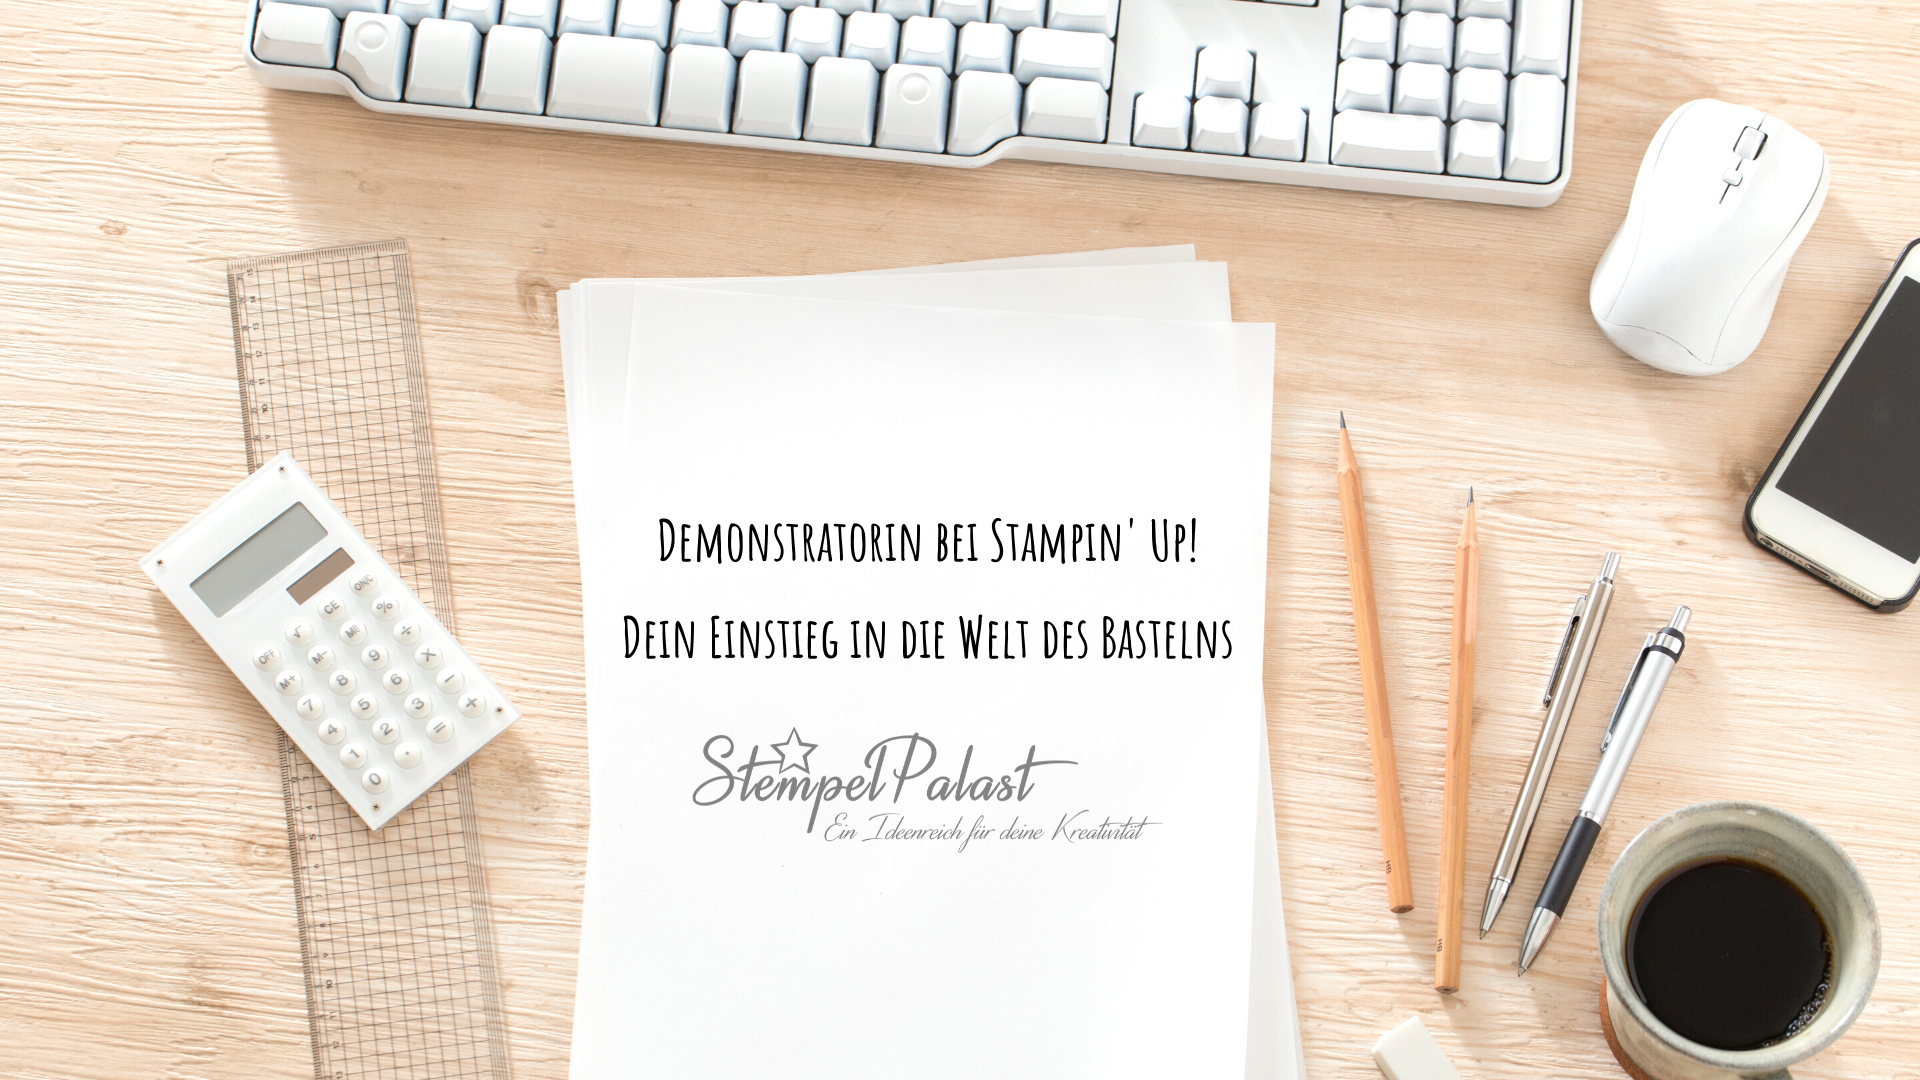 Demonstratorin bei Stampin' Up!, Dein Einstieg